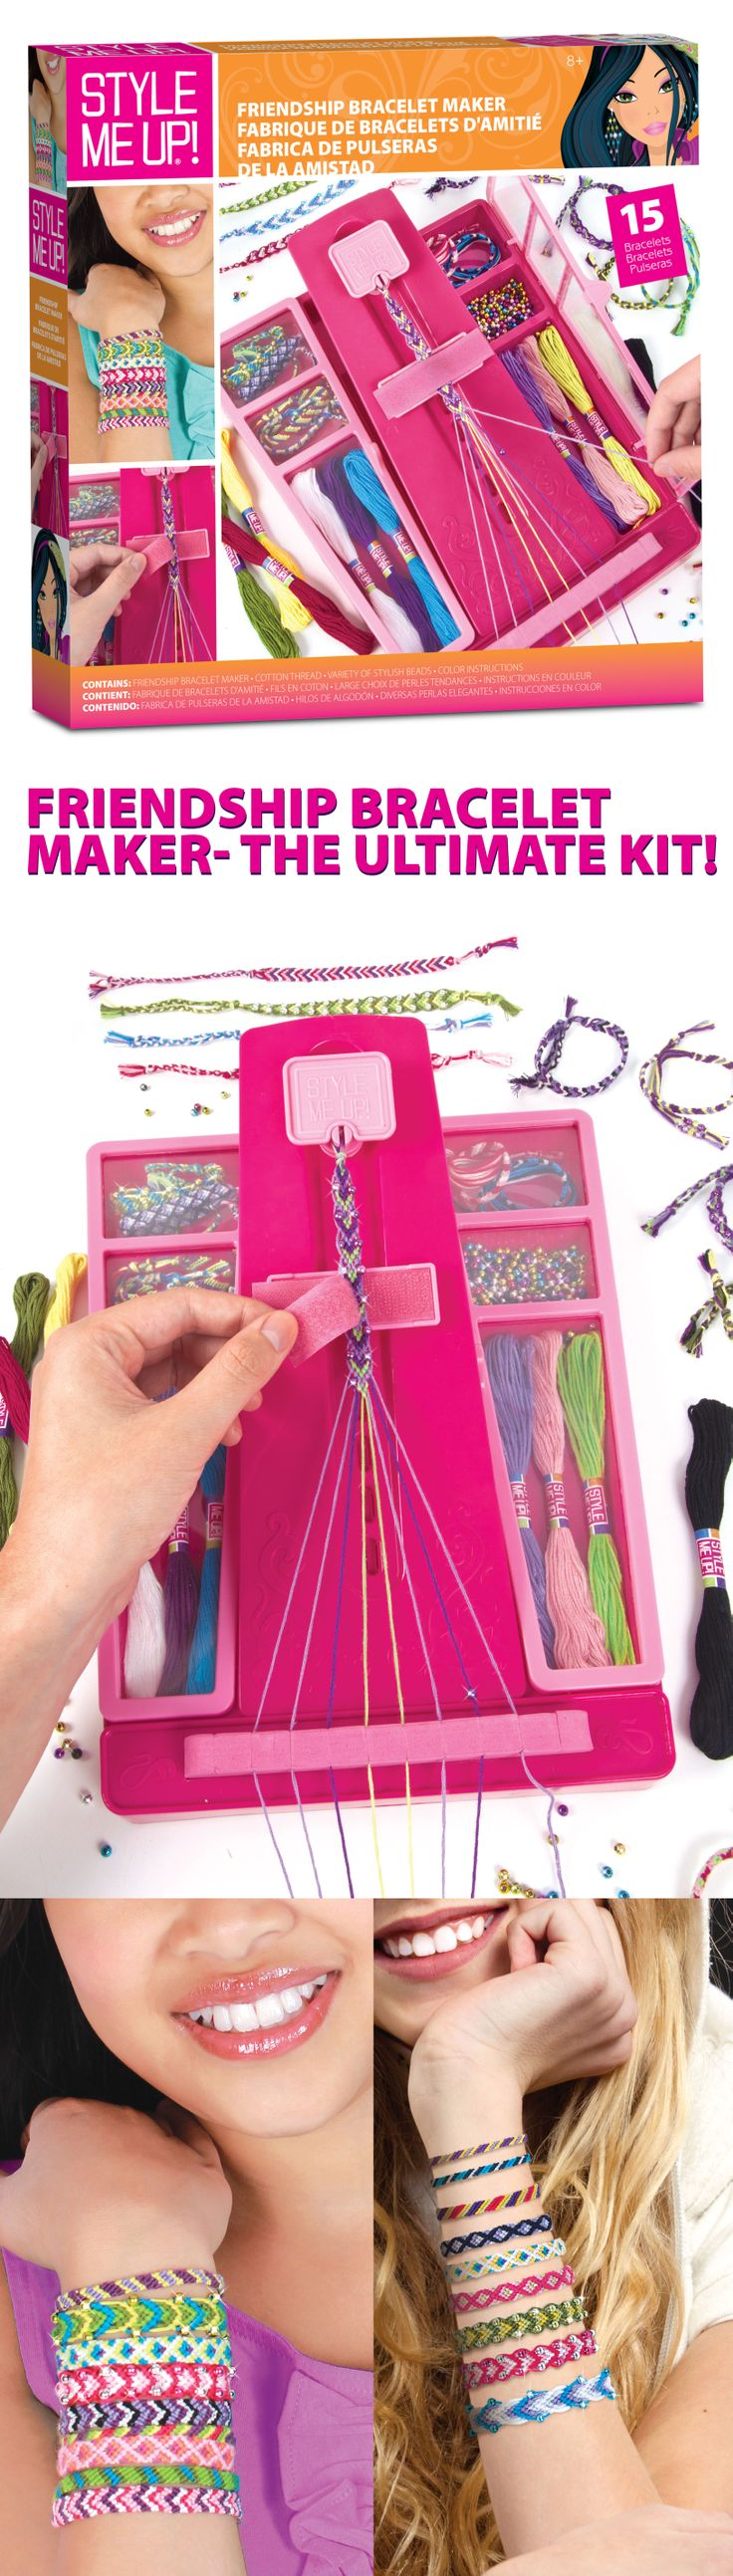 With this ultimate kit you can easily create friendship bracelets for all your BFFs! The friendship bracelet maker can also store all your beads and threads.